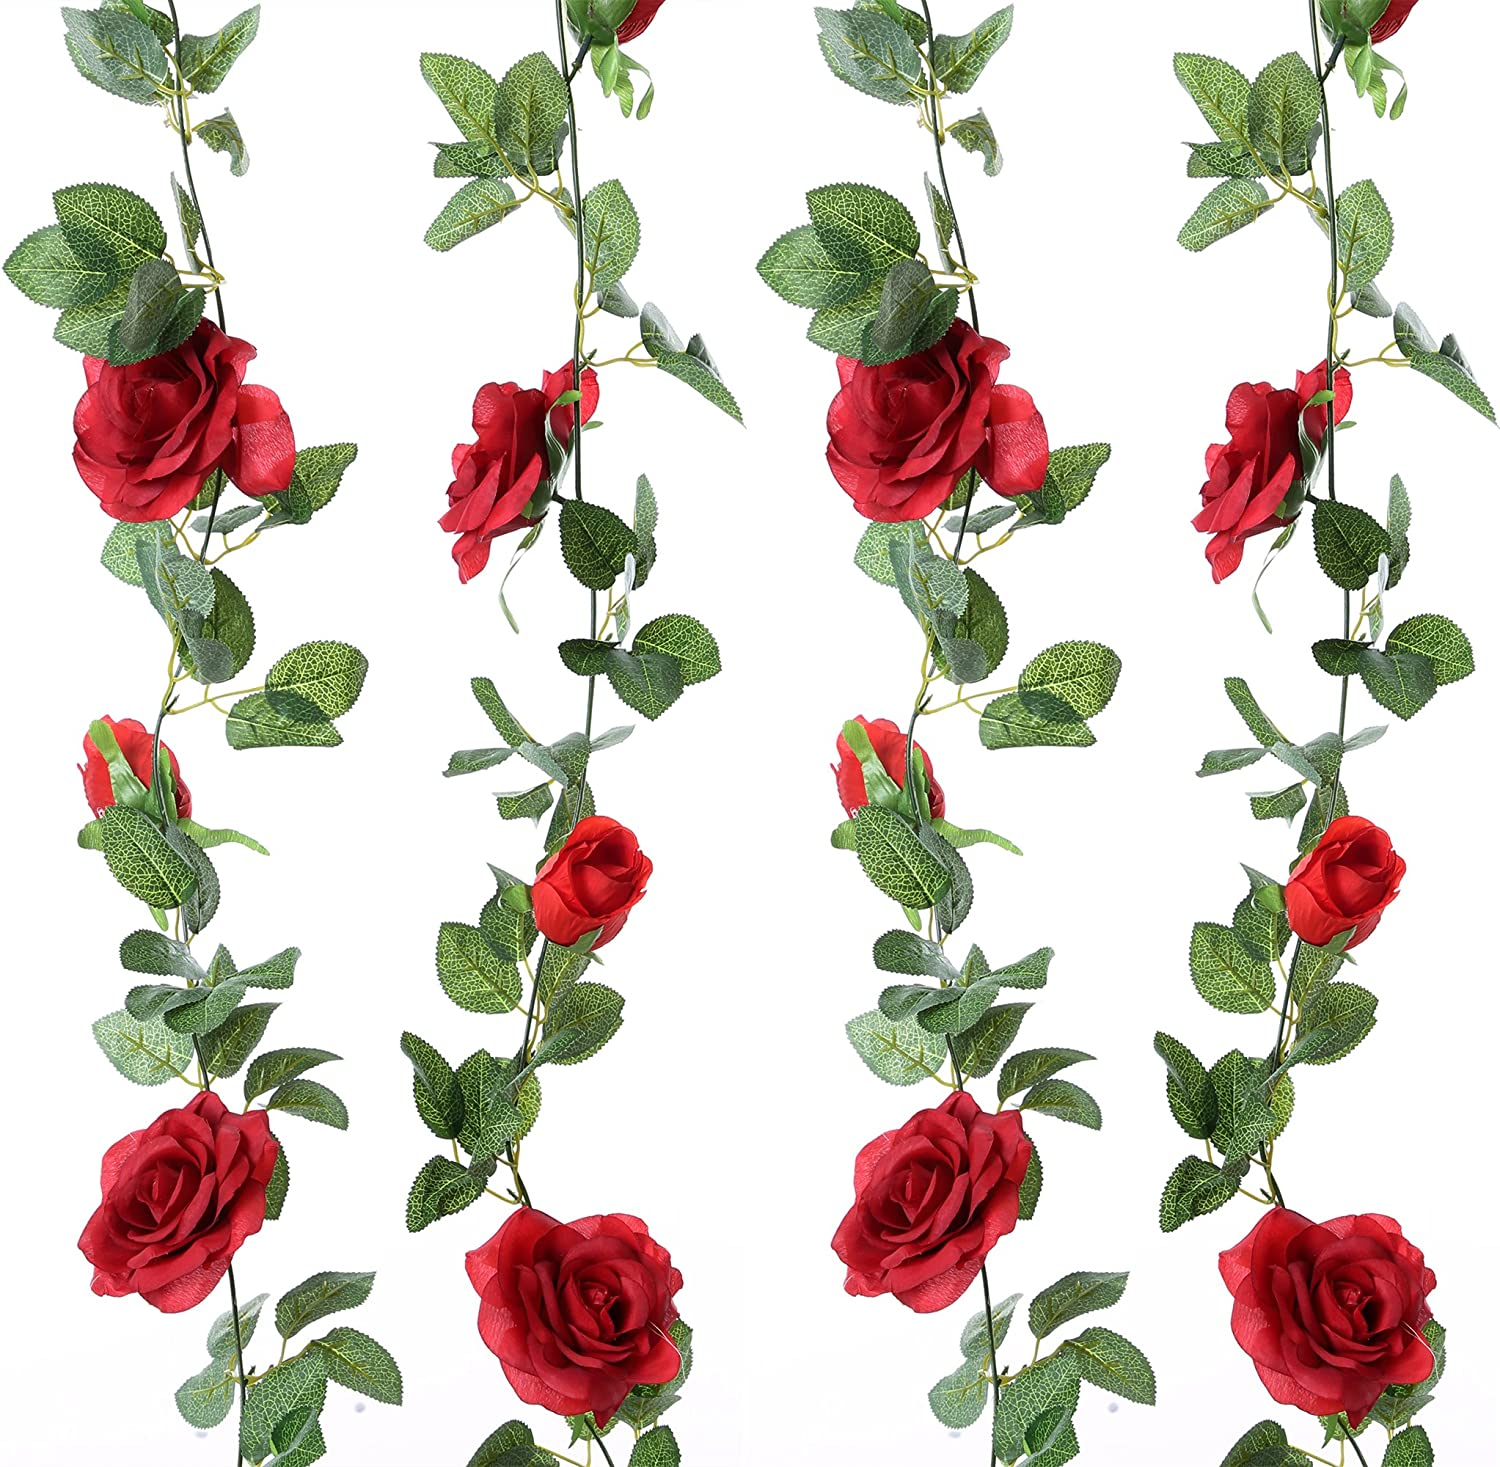 Felice Arts 2PCS 13 FT Fake Silk Rose Vine Artificial Flowers Garland Plants Hanging Rose Ivy for Home Wedding Party Garden Hotel Office Craft Art Decor, Red